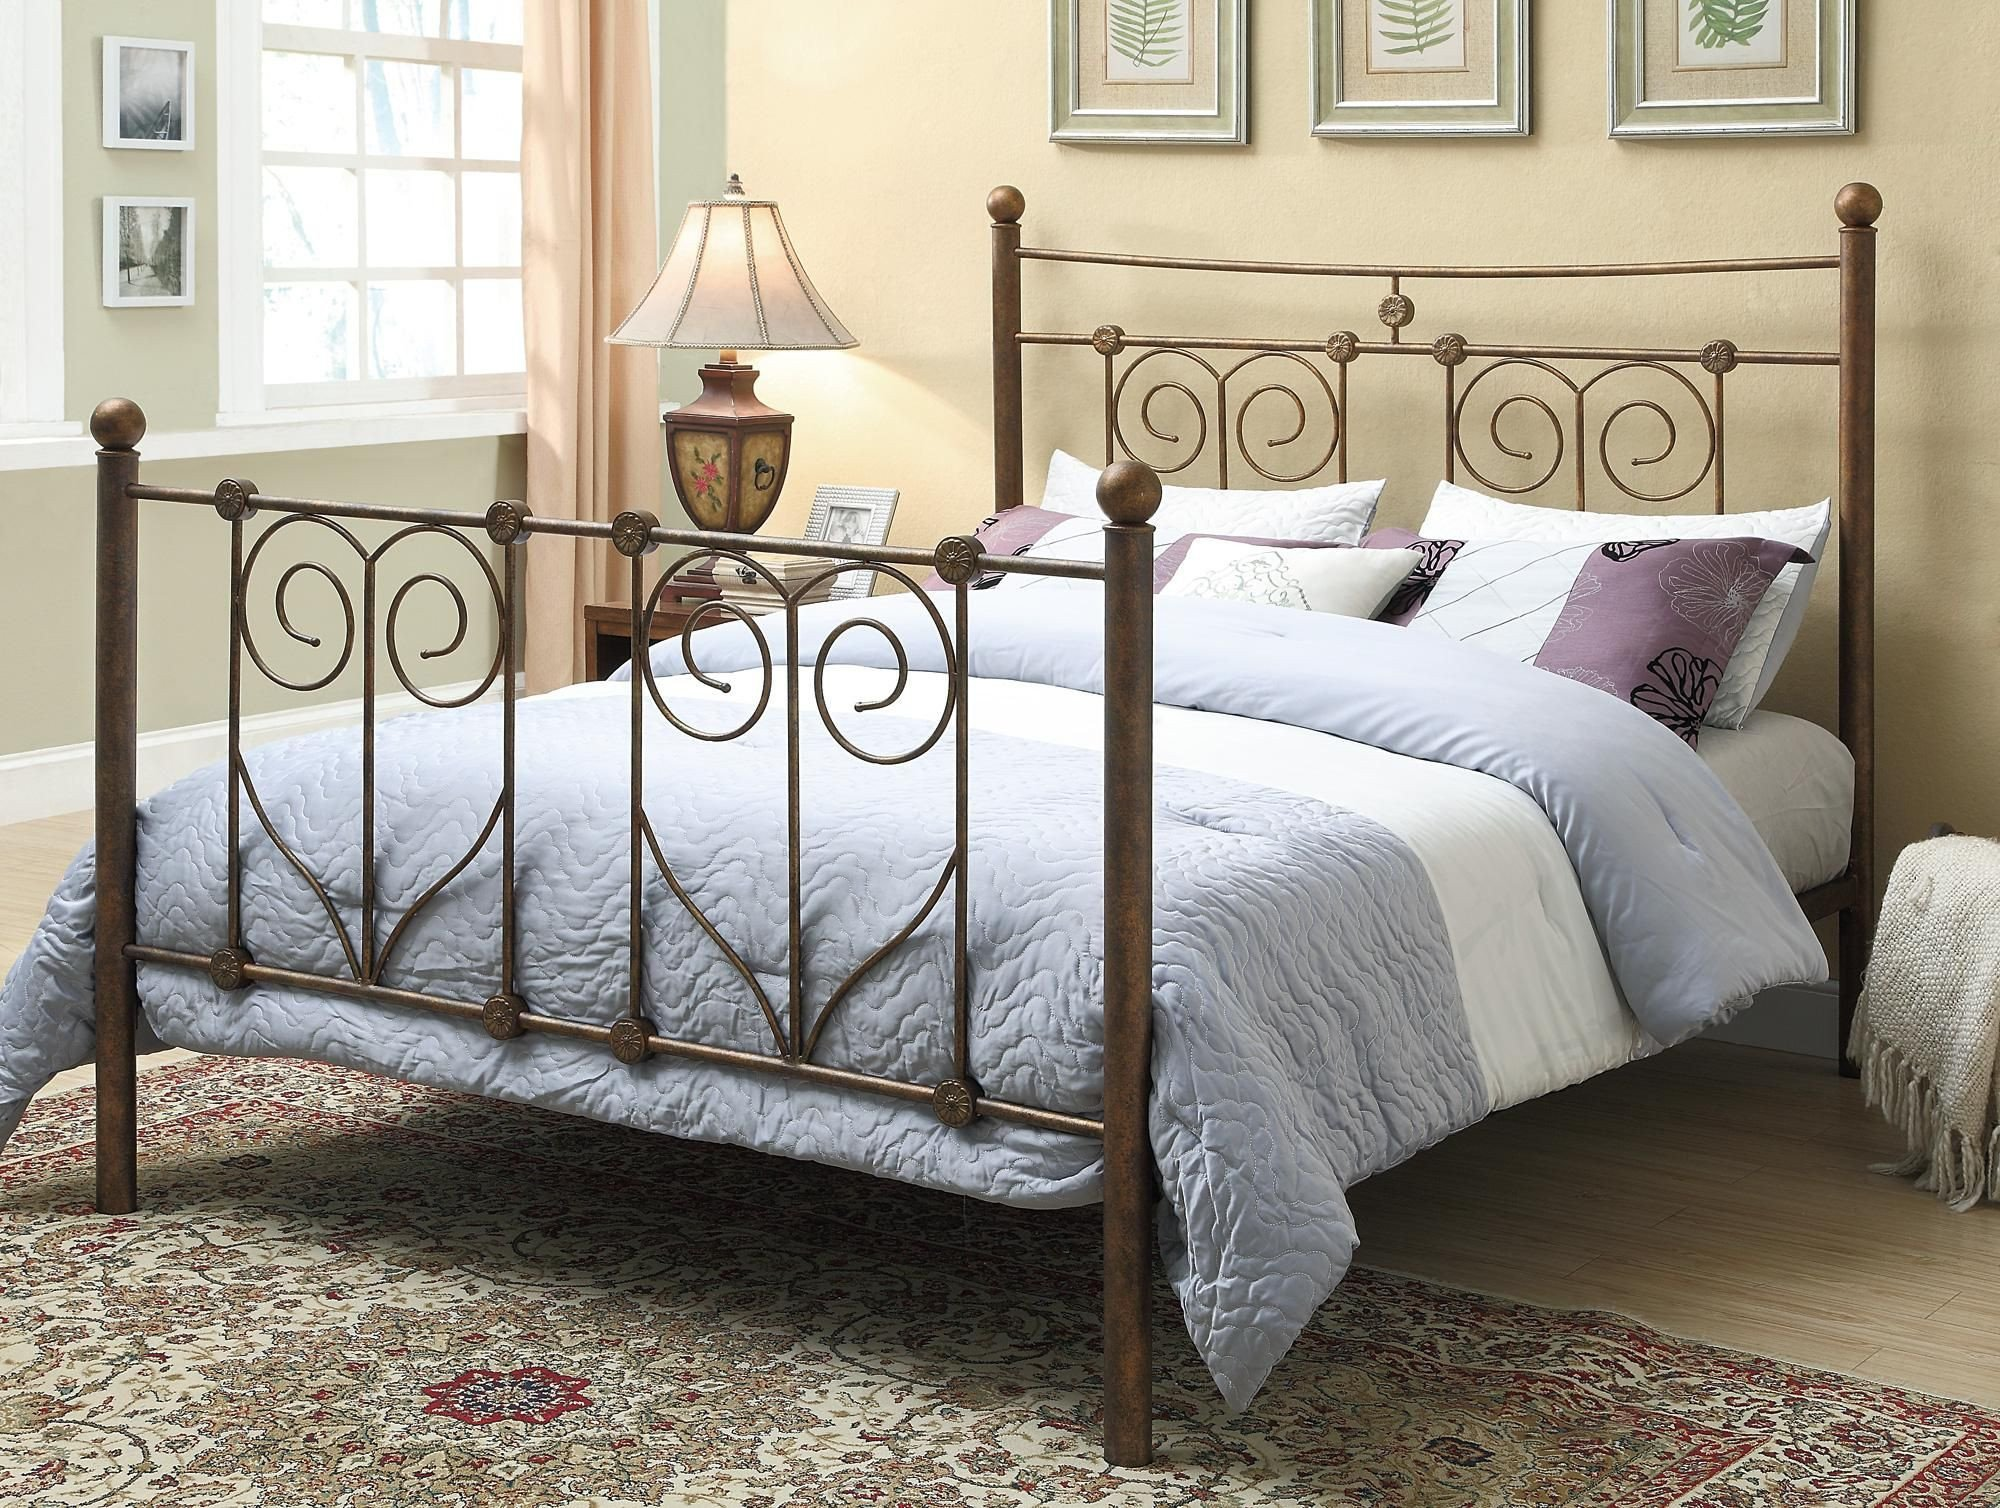 Wrought Iron Bedroom Set New Rustic Metal Head & Footboard Traditional Feel Mhf